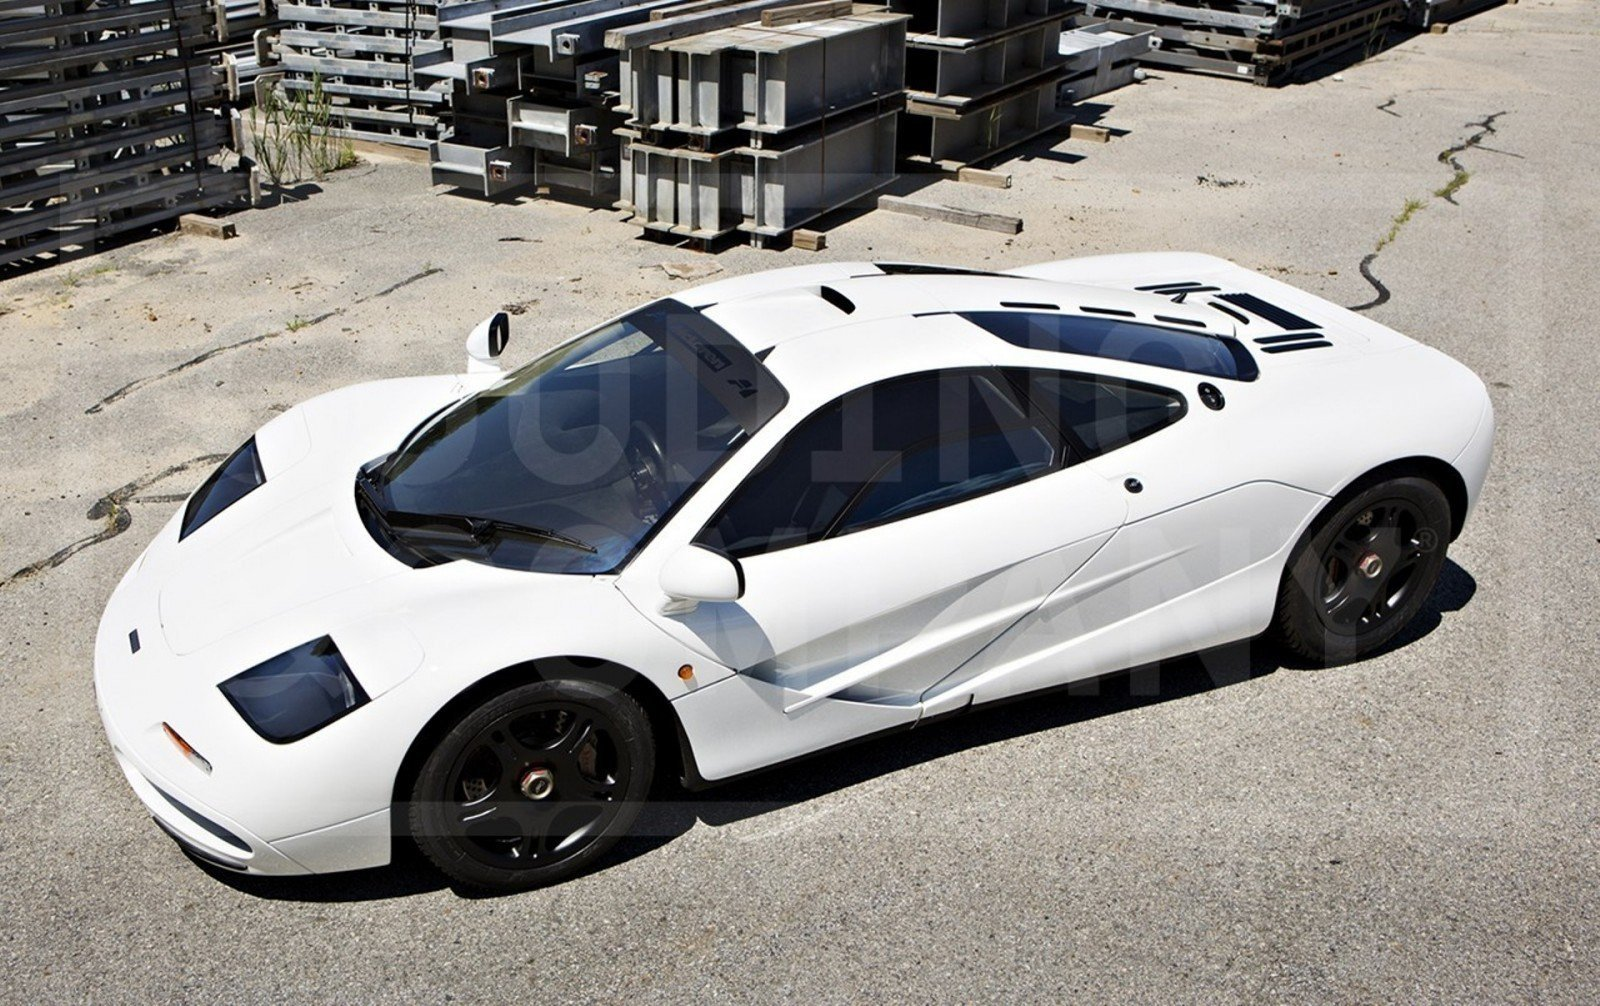 Gooding Pebble Beach 2014 Preview - 1995 McLaren F1 - The Only White F1 Ever Made = $12Mil+ 3